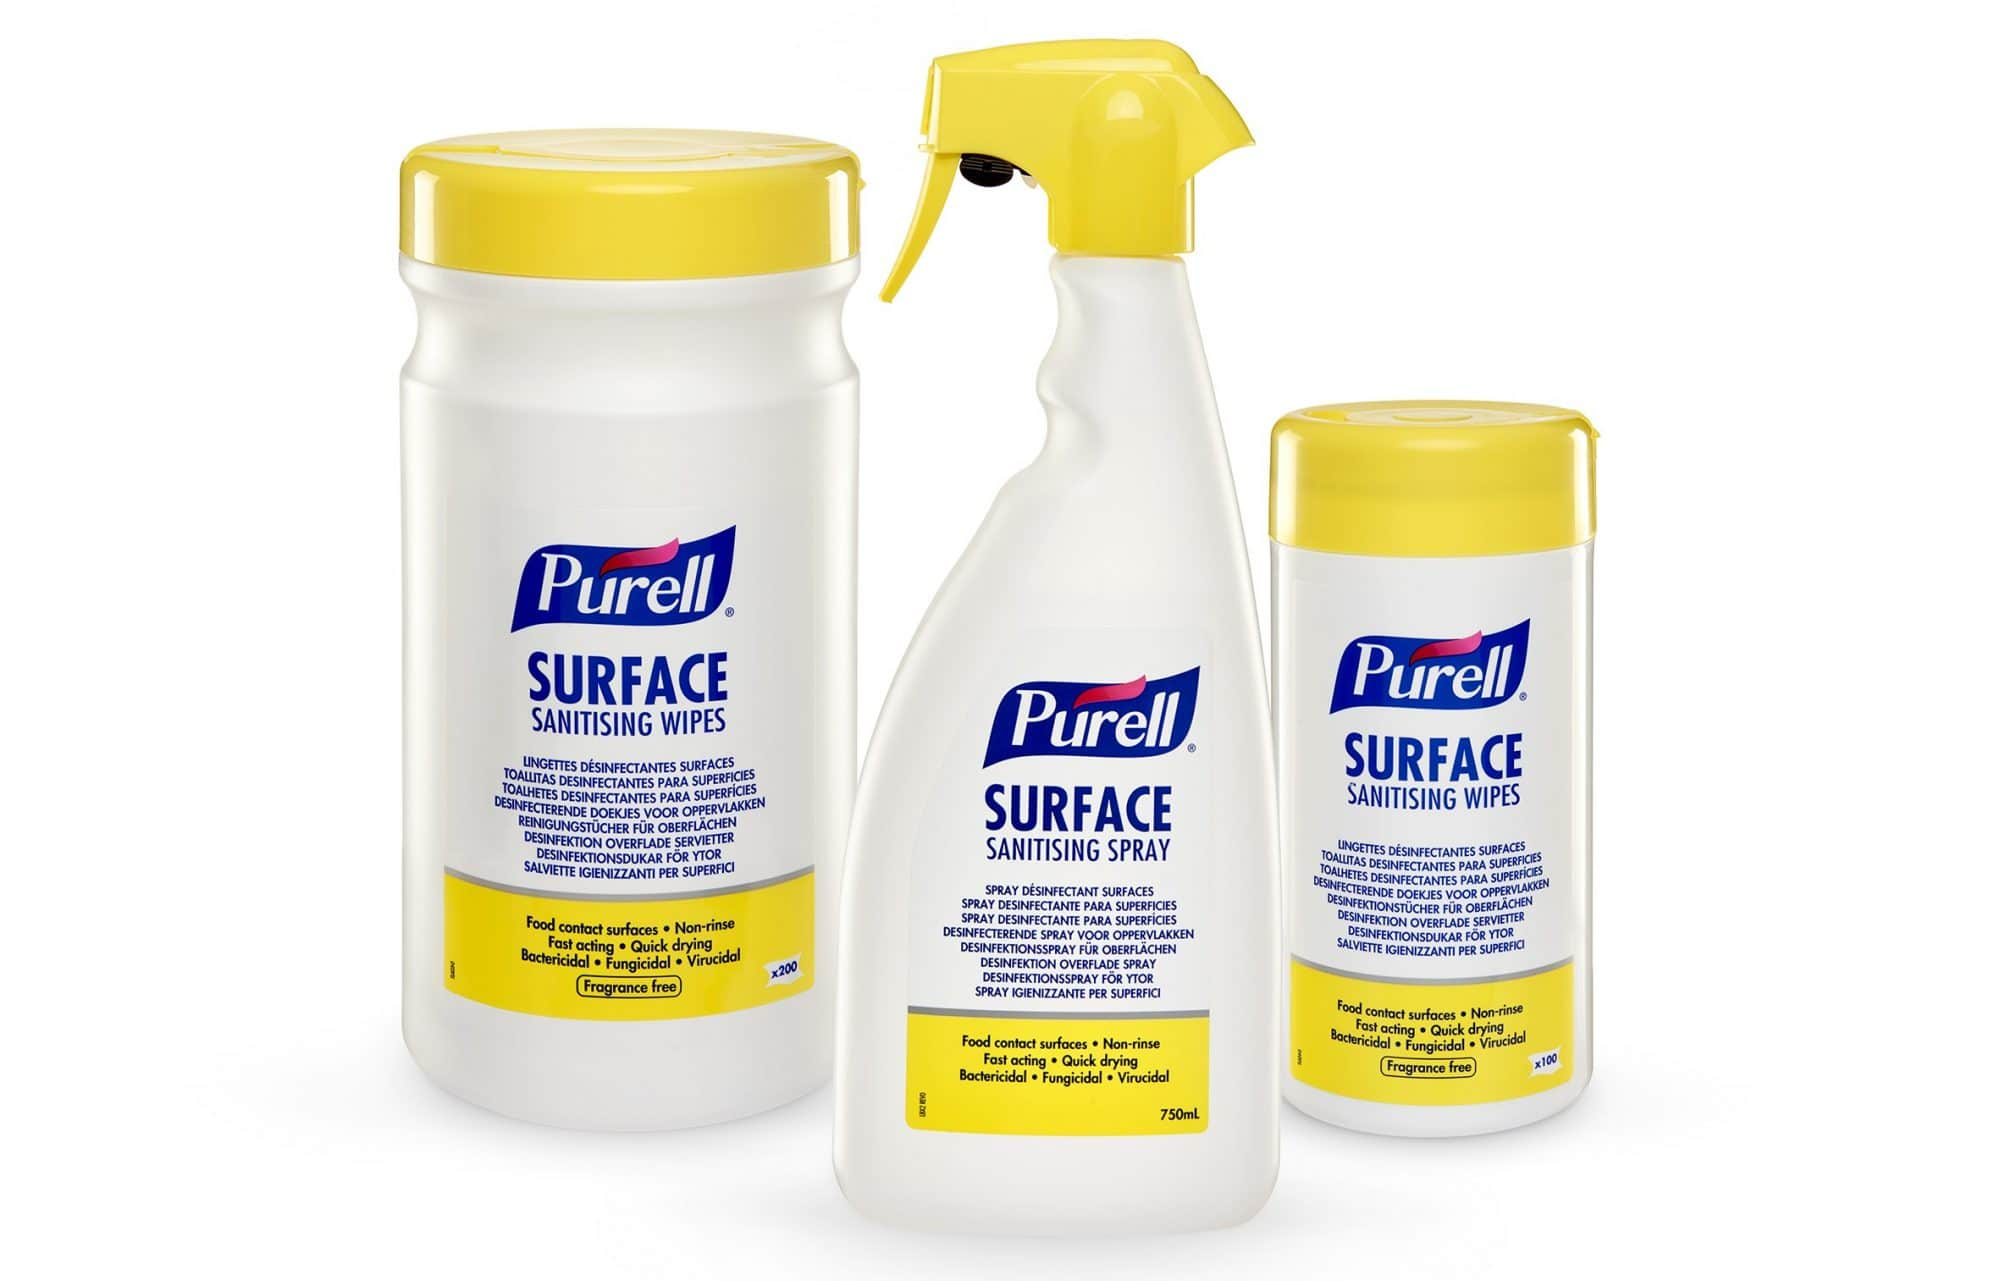 PURELL Surface Sanitising Spray & Wipes launched to address